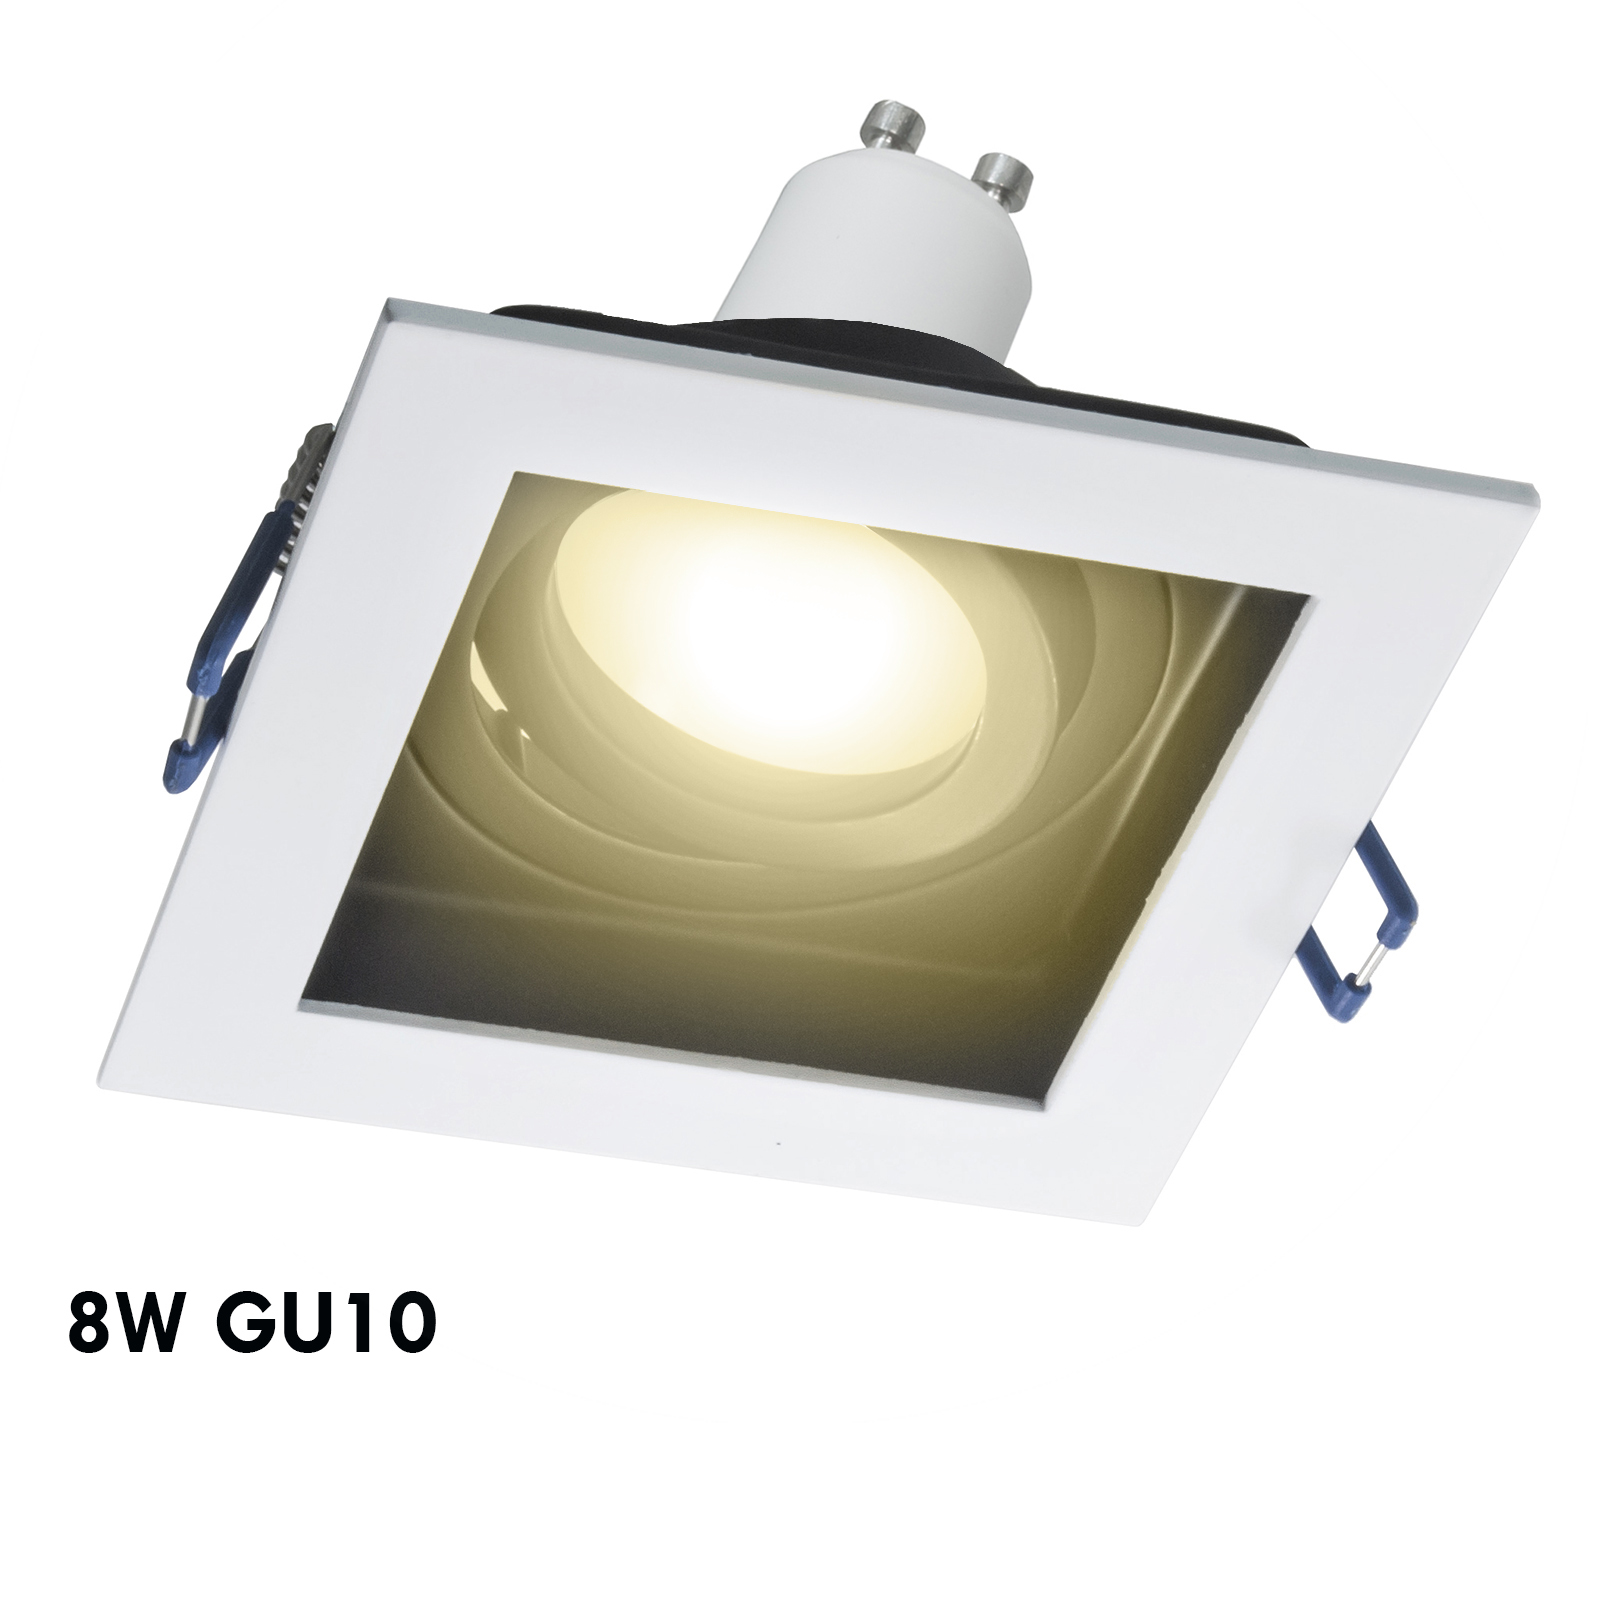 LED spotlight 8W dual color square built-in 9cm lights ceiling kitchen GU10 230V